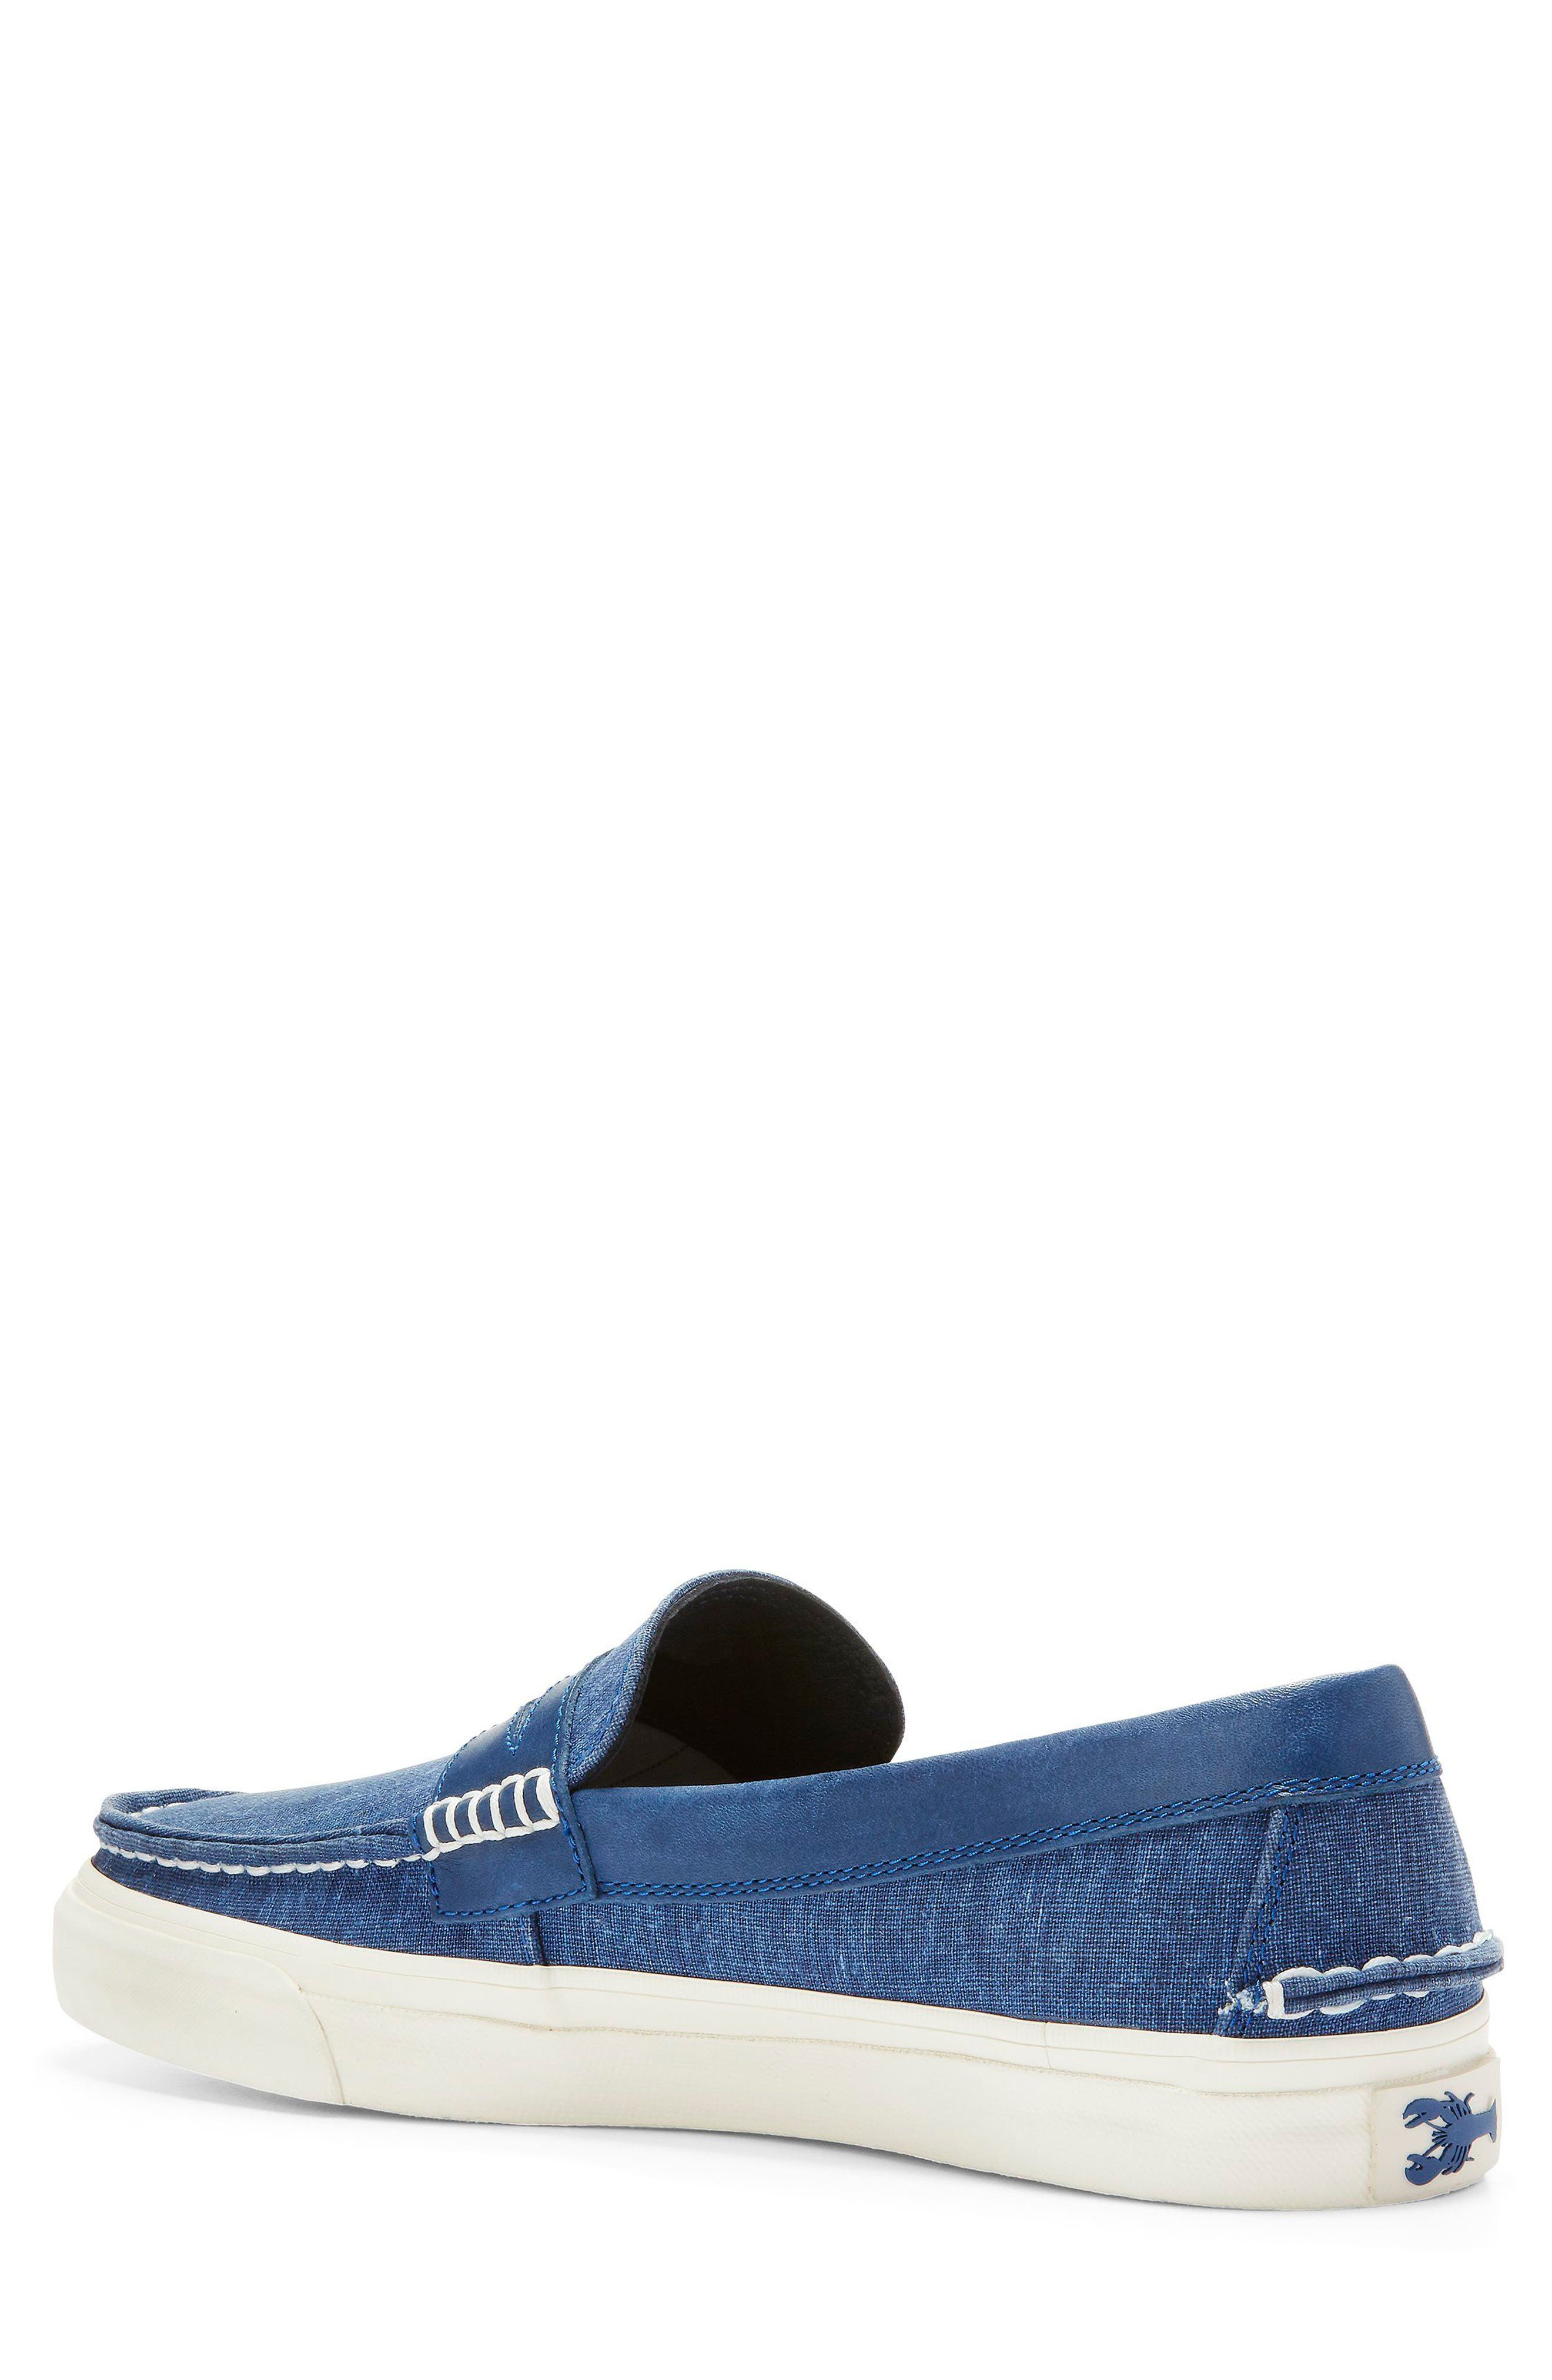 Pinch Weekend LX Penny Loafer,                             Alternate thumbnail 19, color,